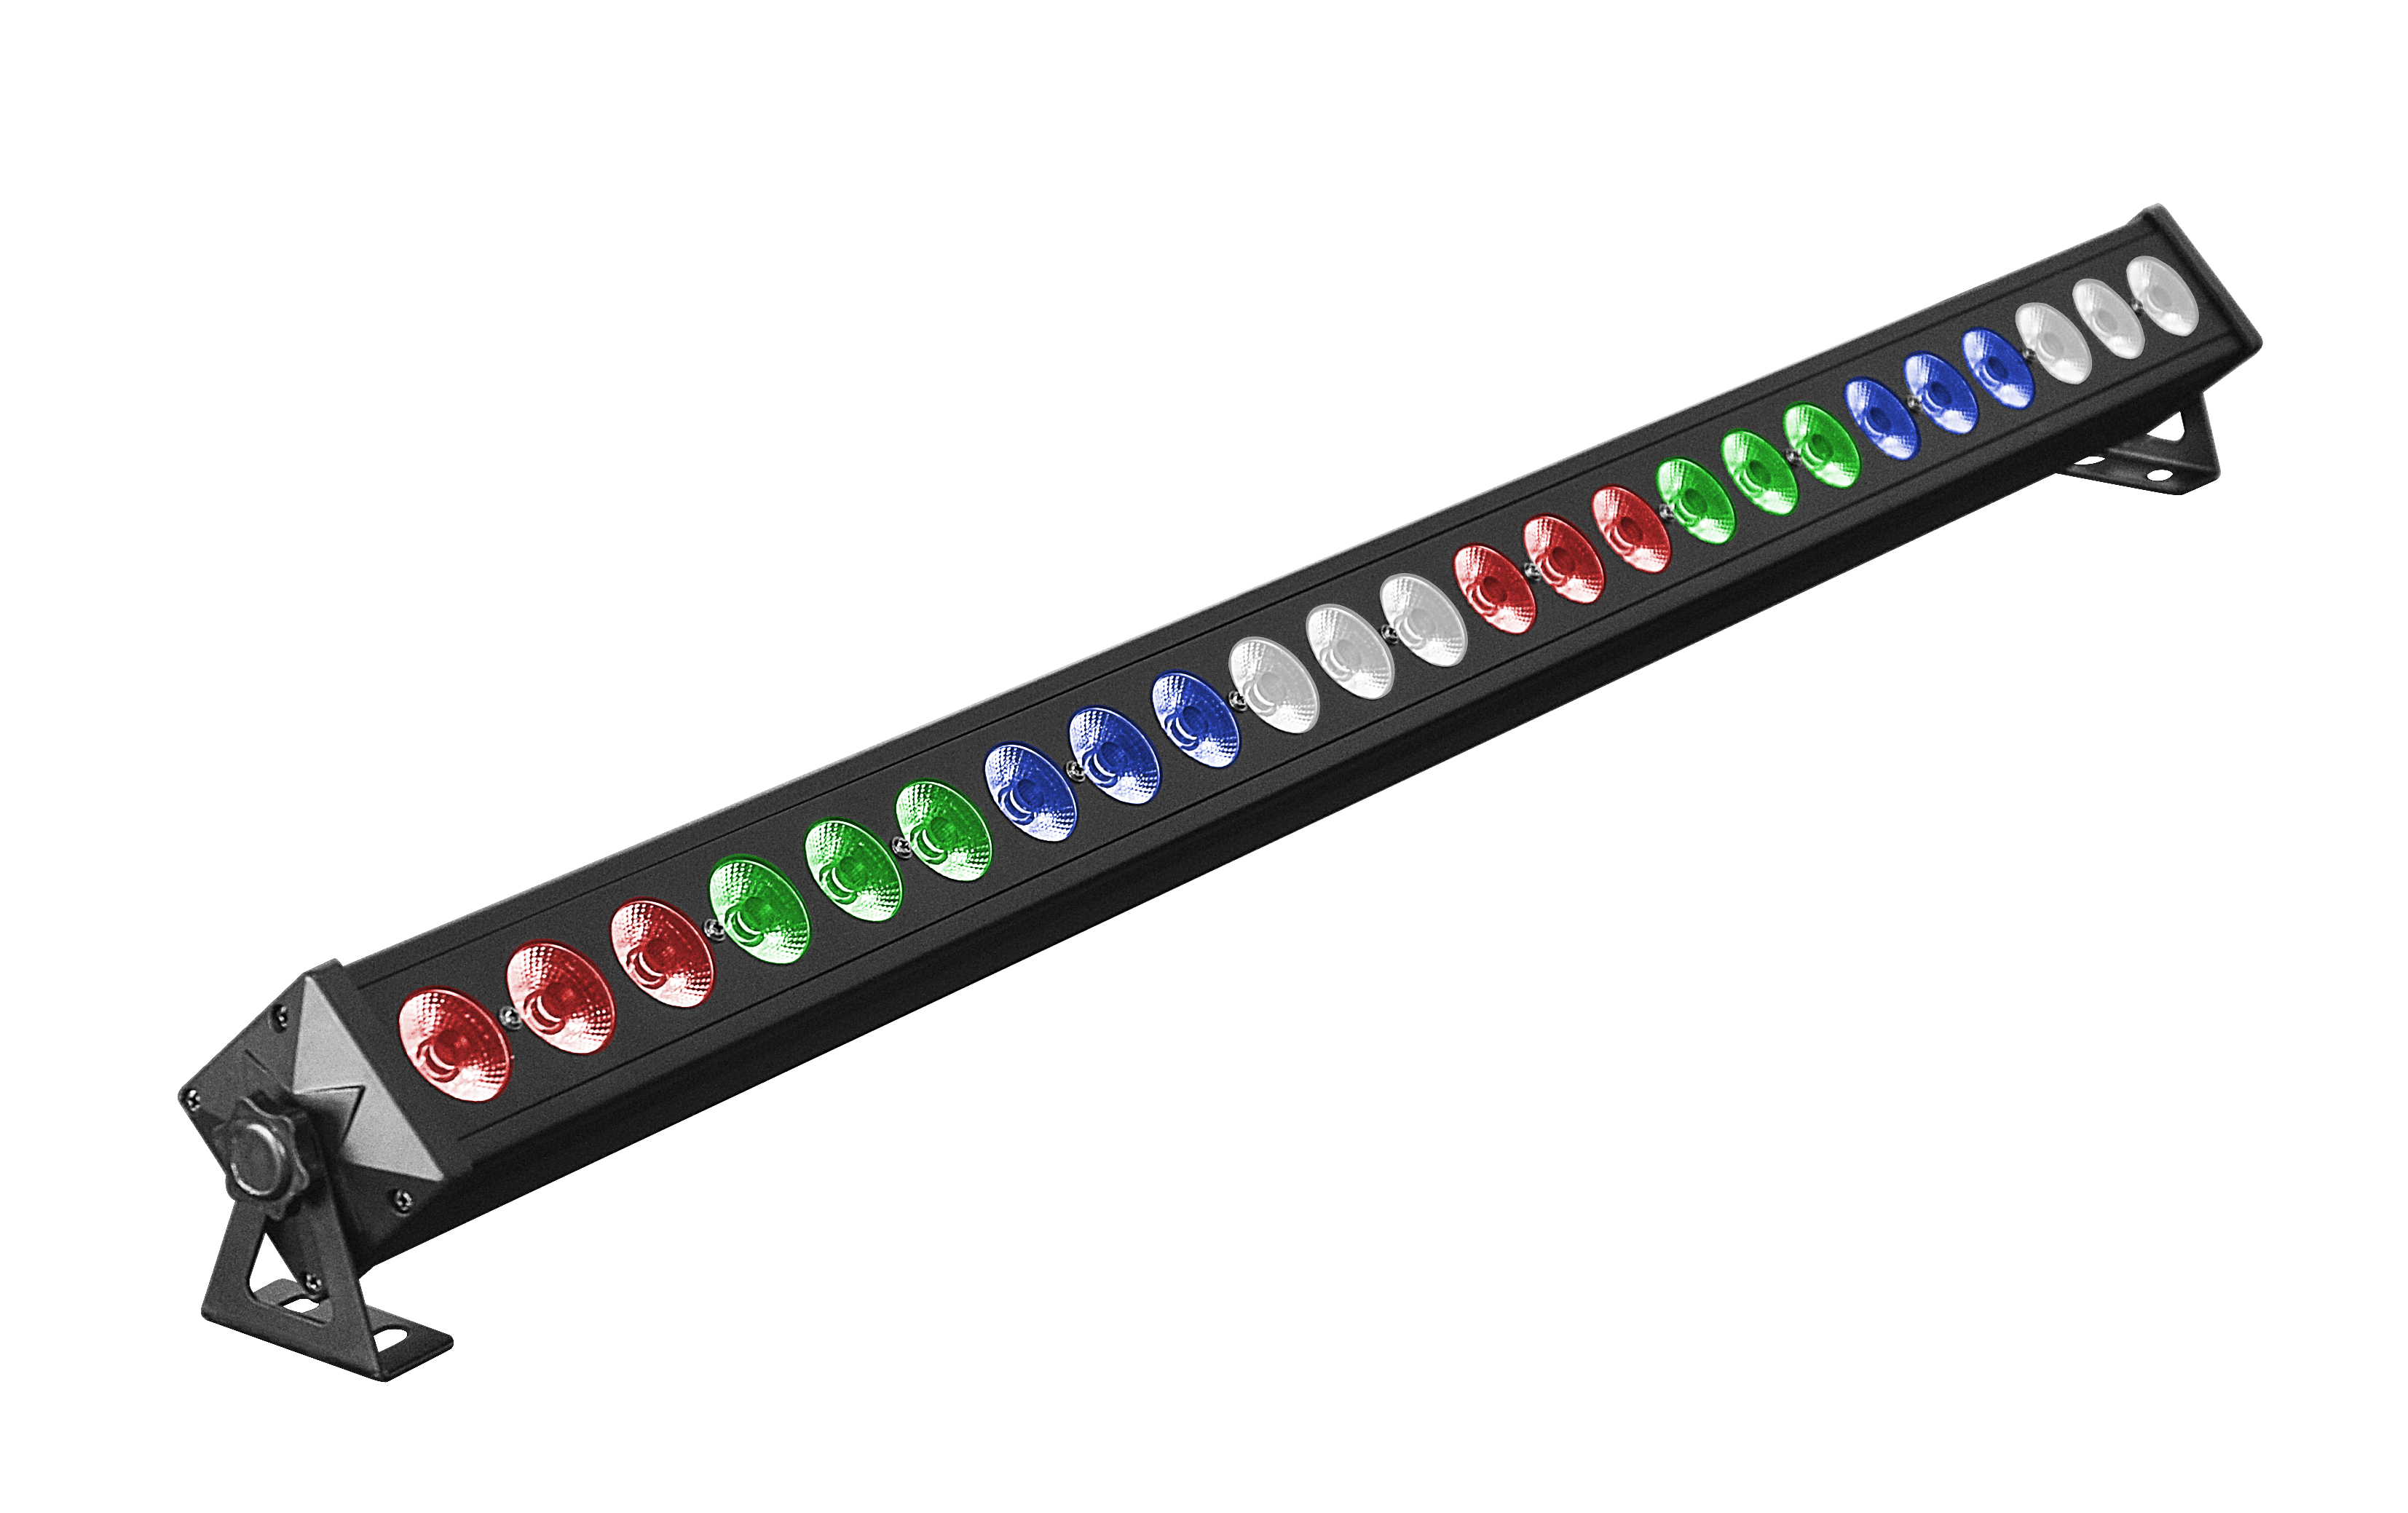 BARRE LED 24X3W RGB